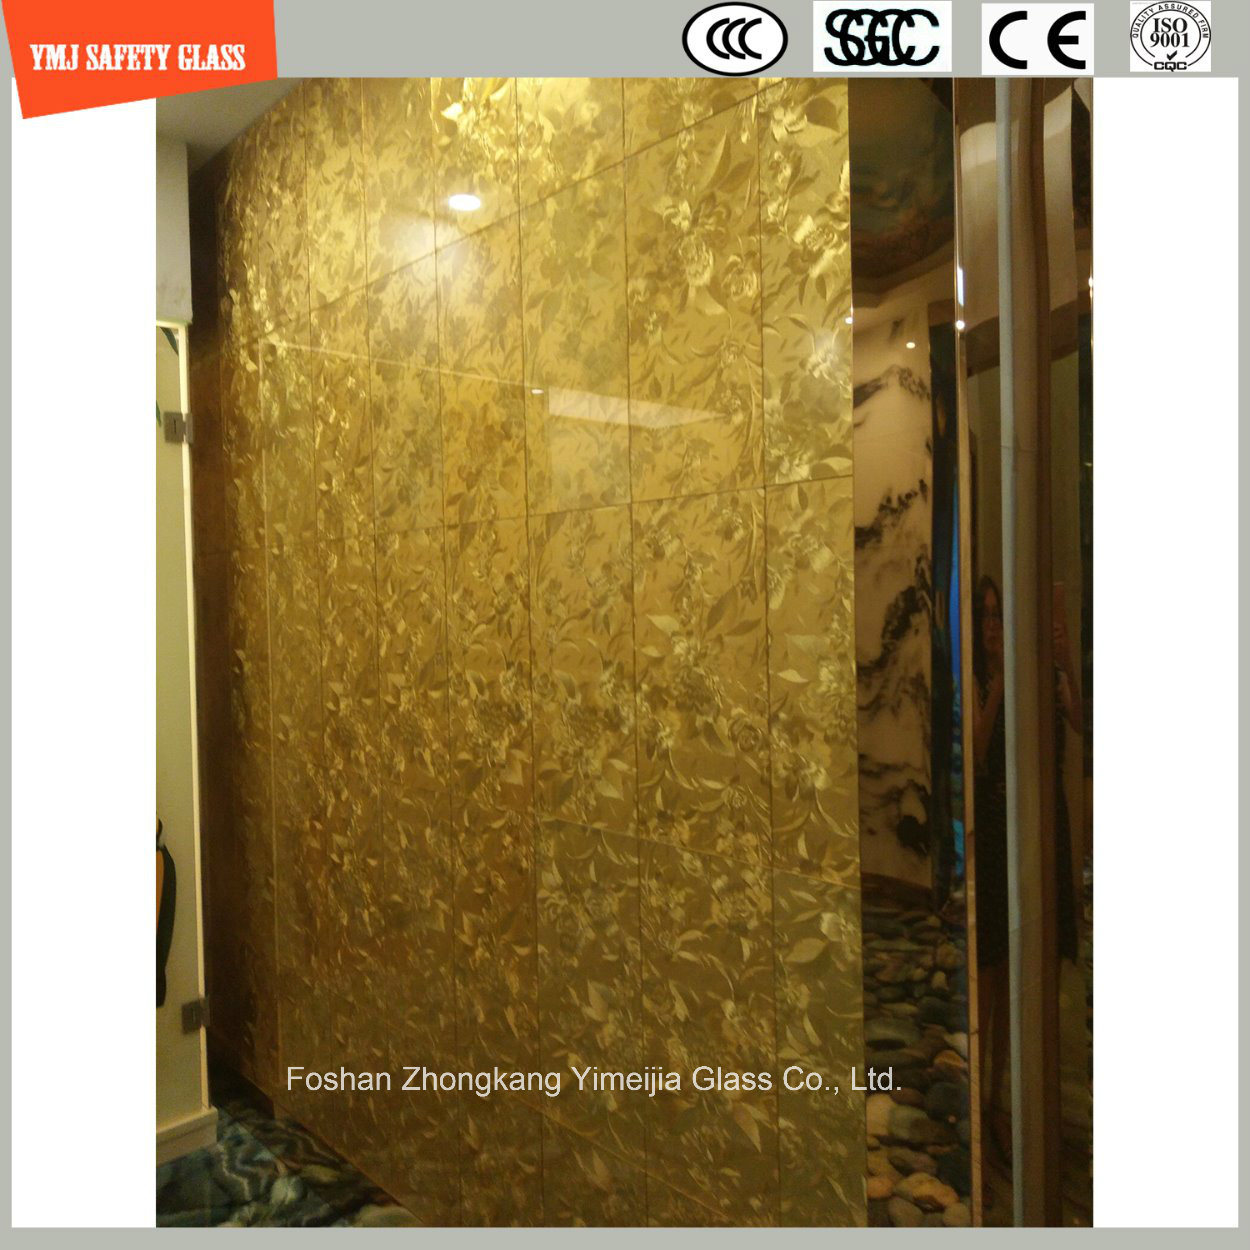 China 6mm-20mm Safetylaminated Glass with Fabric/Leather Interlayer ...